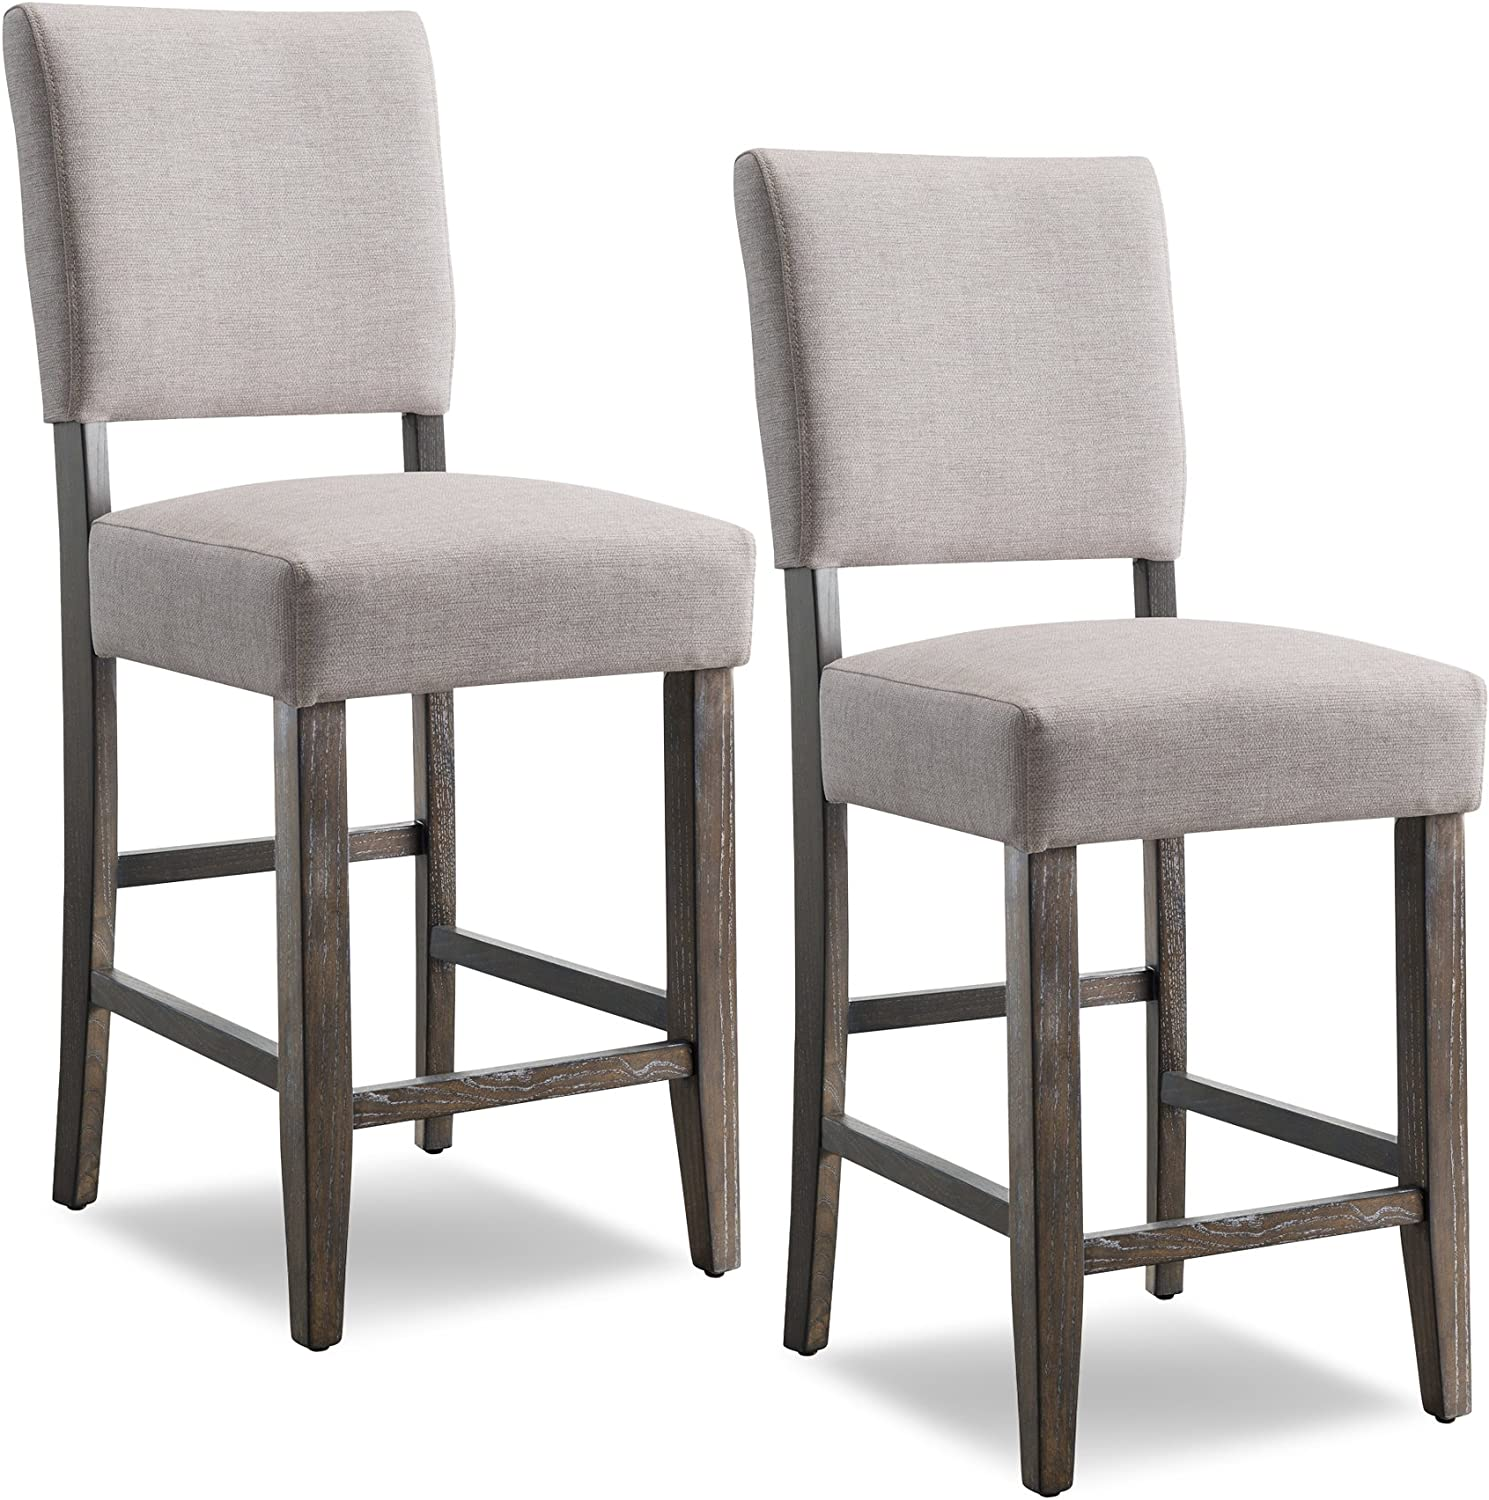 Set of 2 Fabric Bar Stool Pub Chair Bar Height Padded Seat Solid Wood Legs New